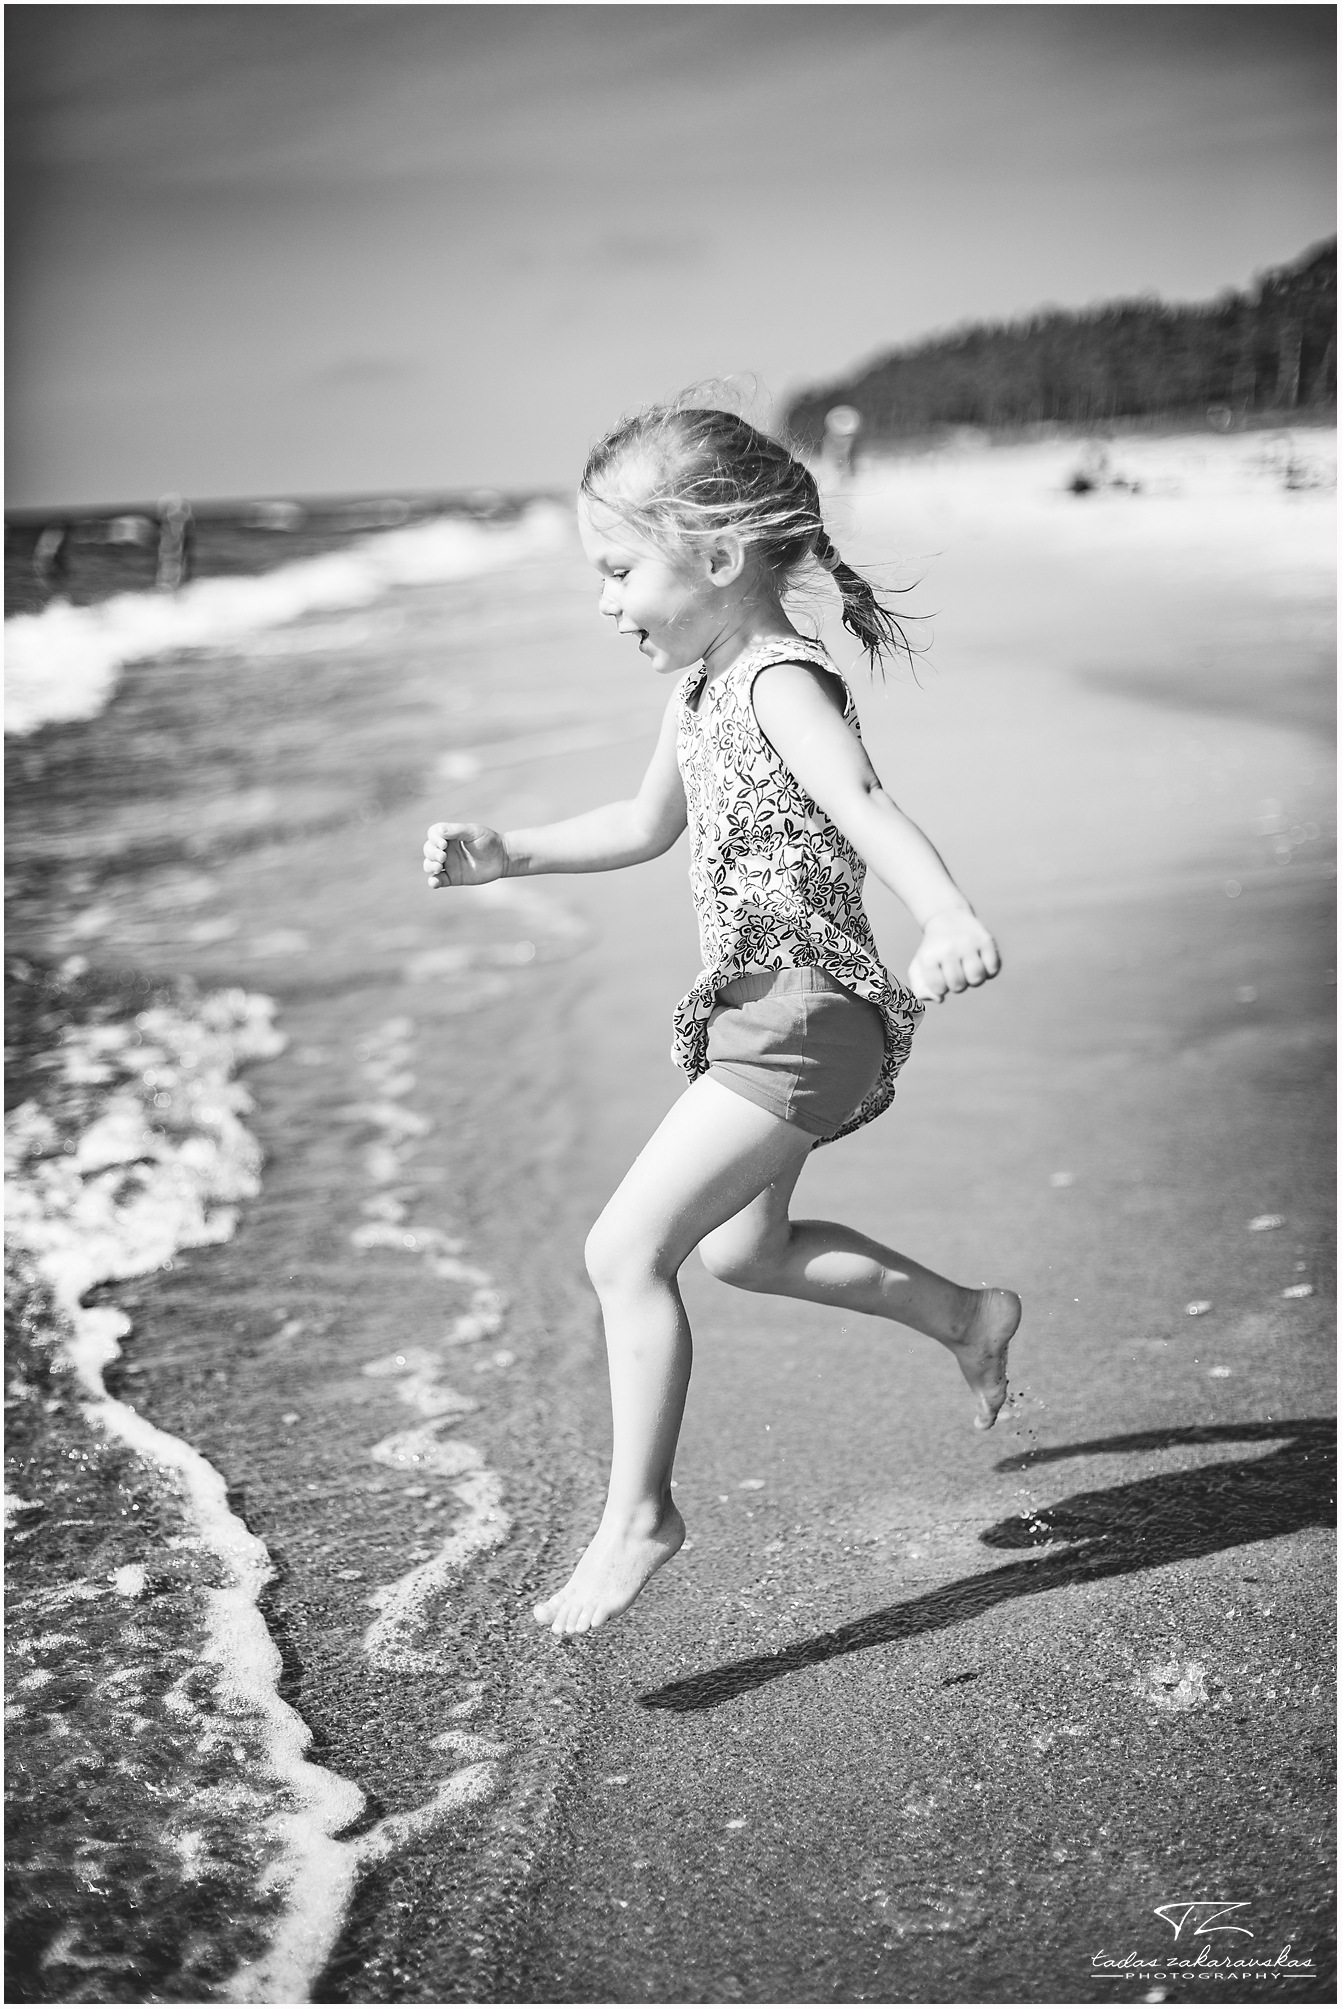 I'm free by TZ photography